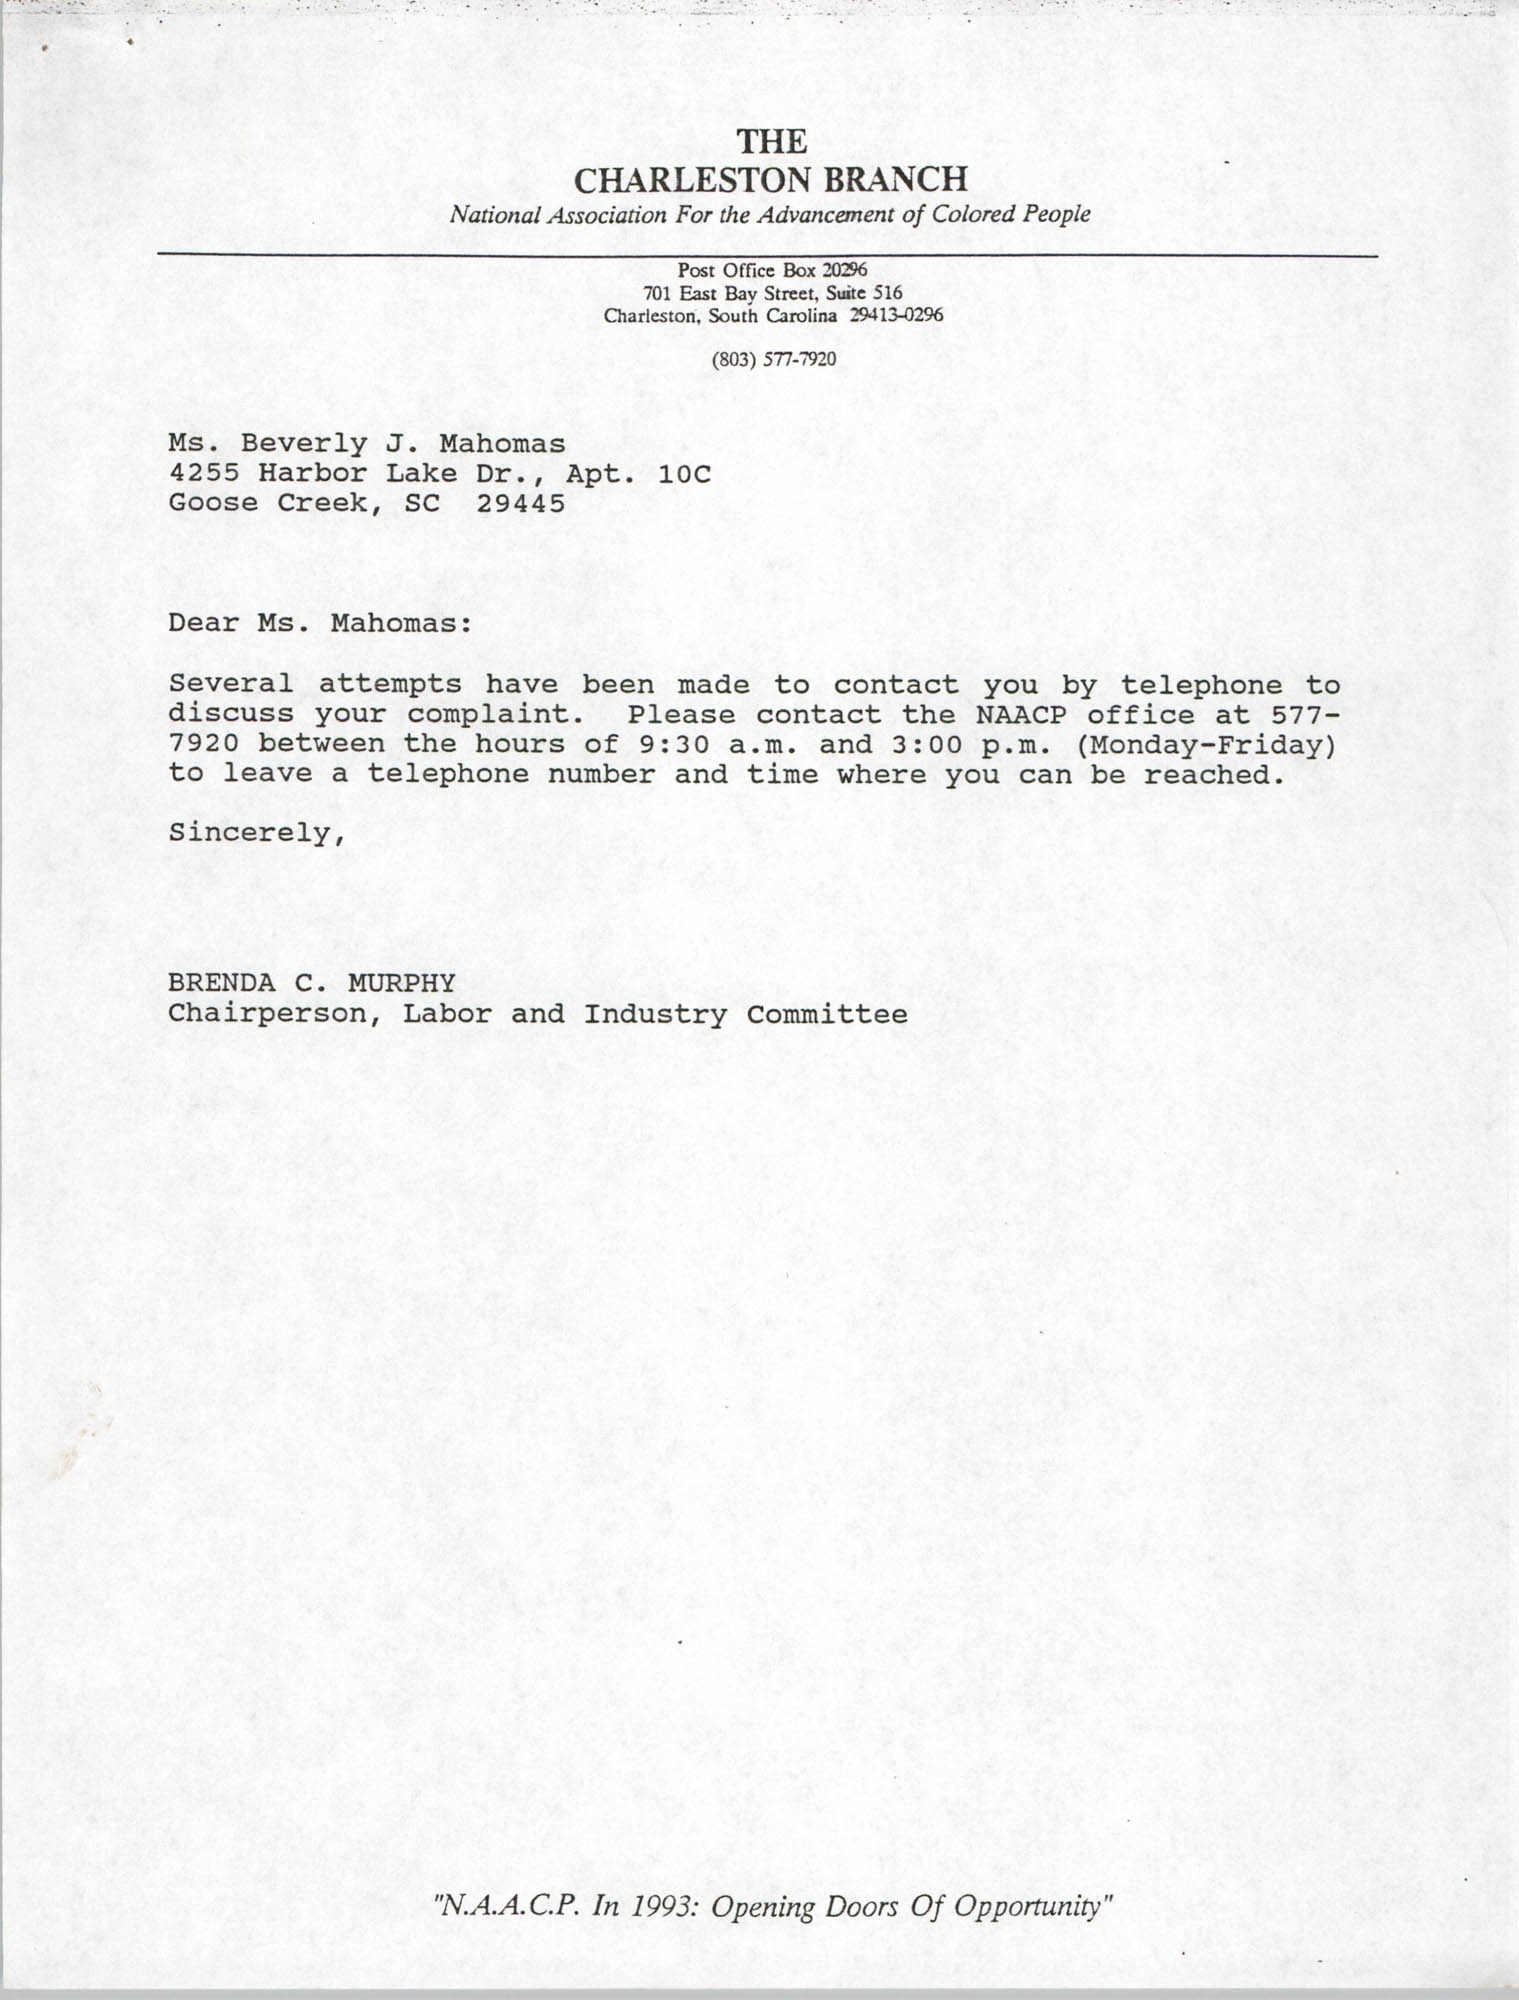 Letter from Brenda C. Murphy to Beverly J. Mahomas